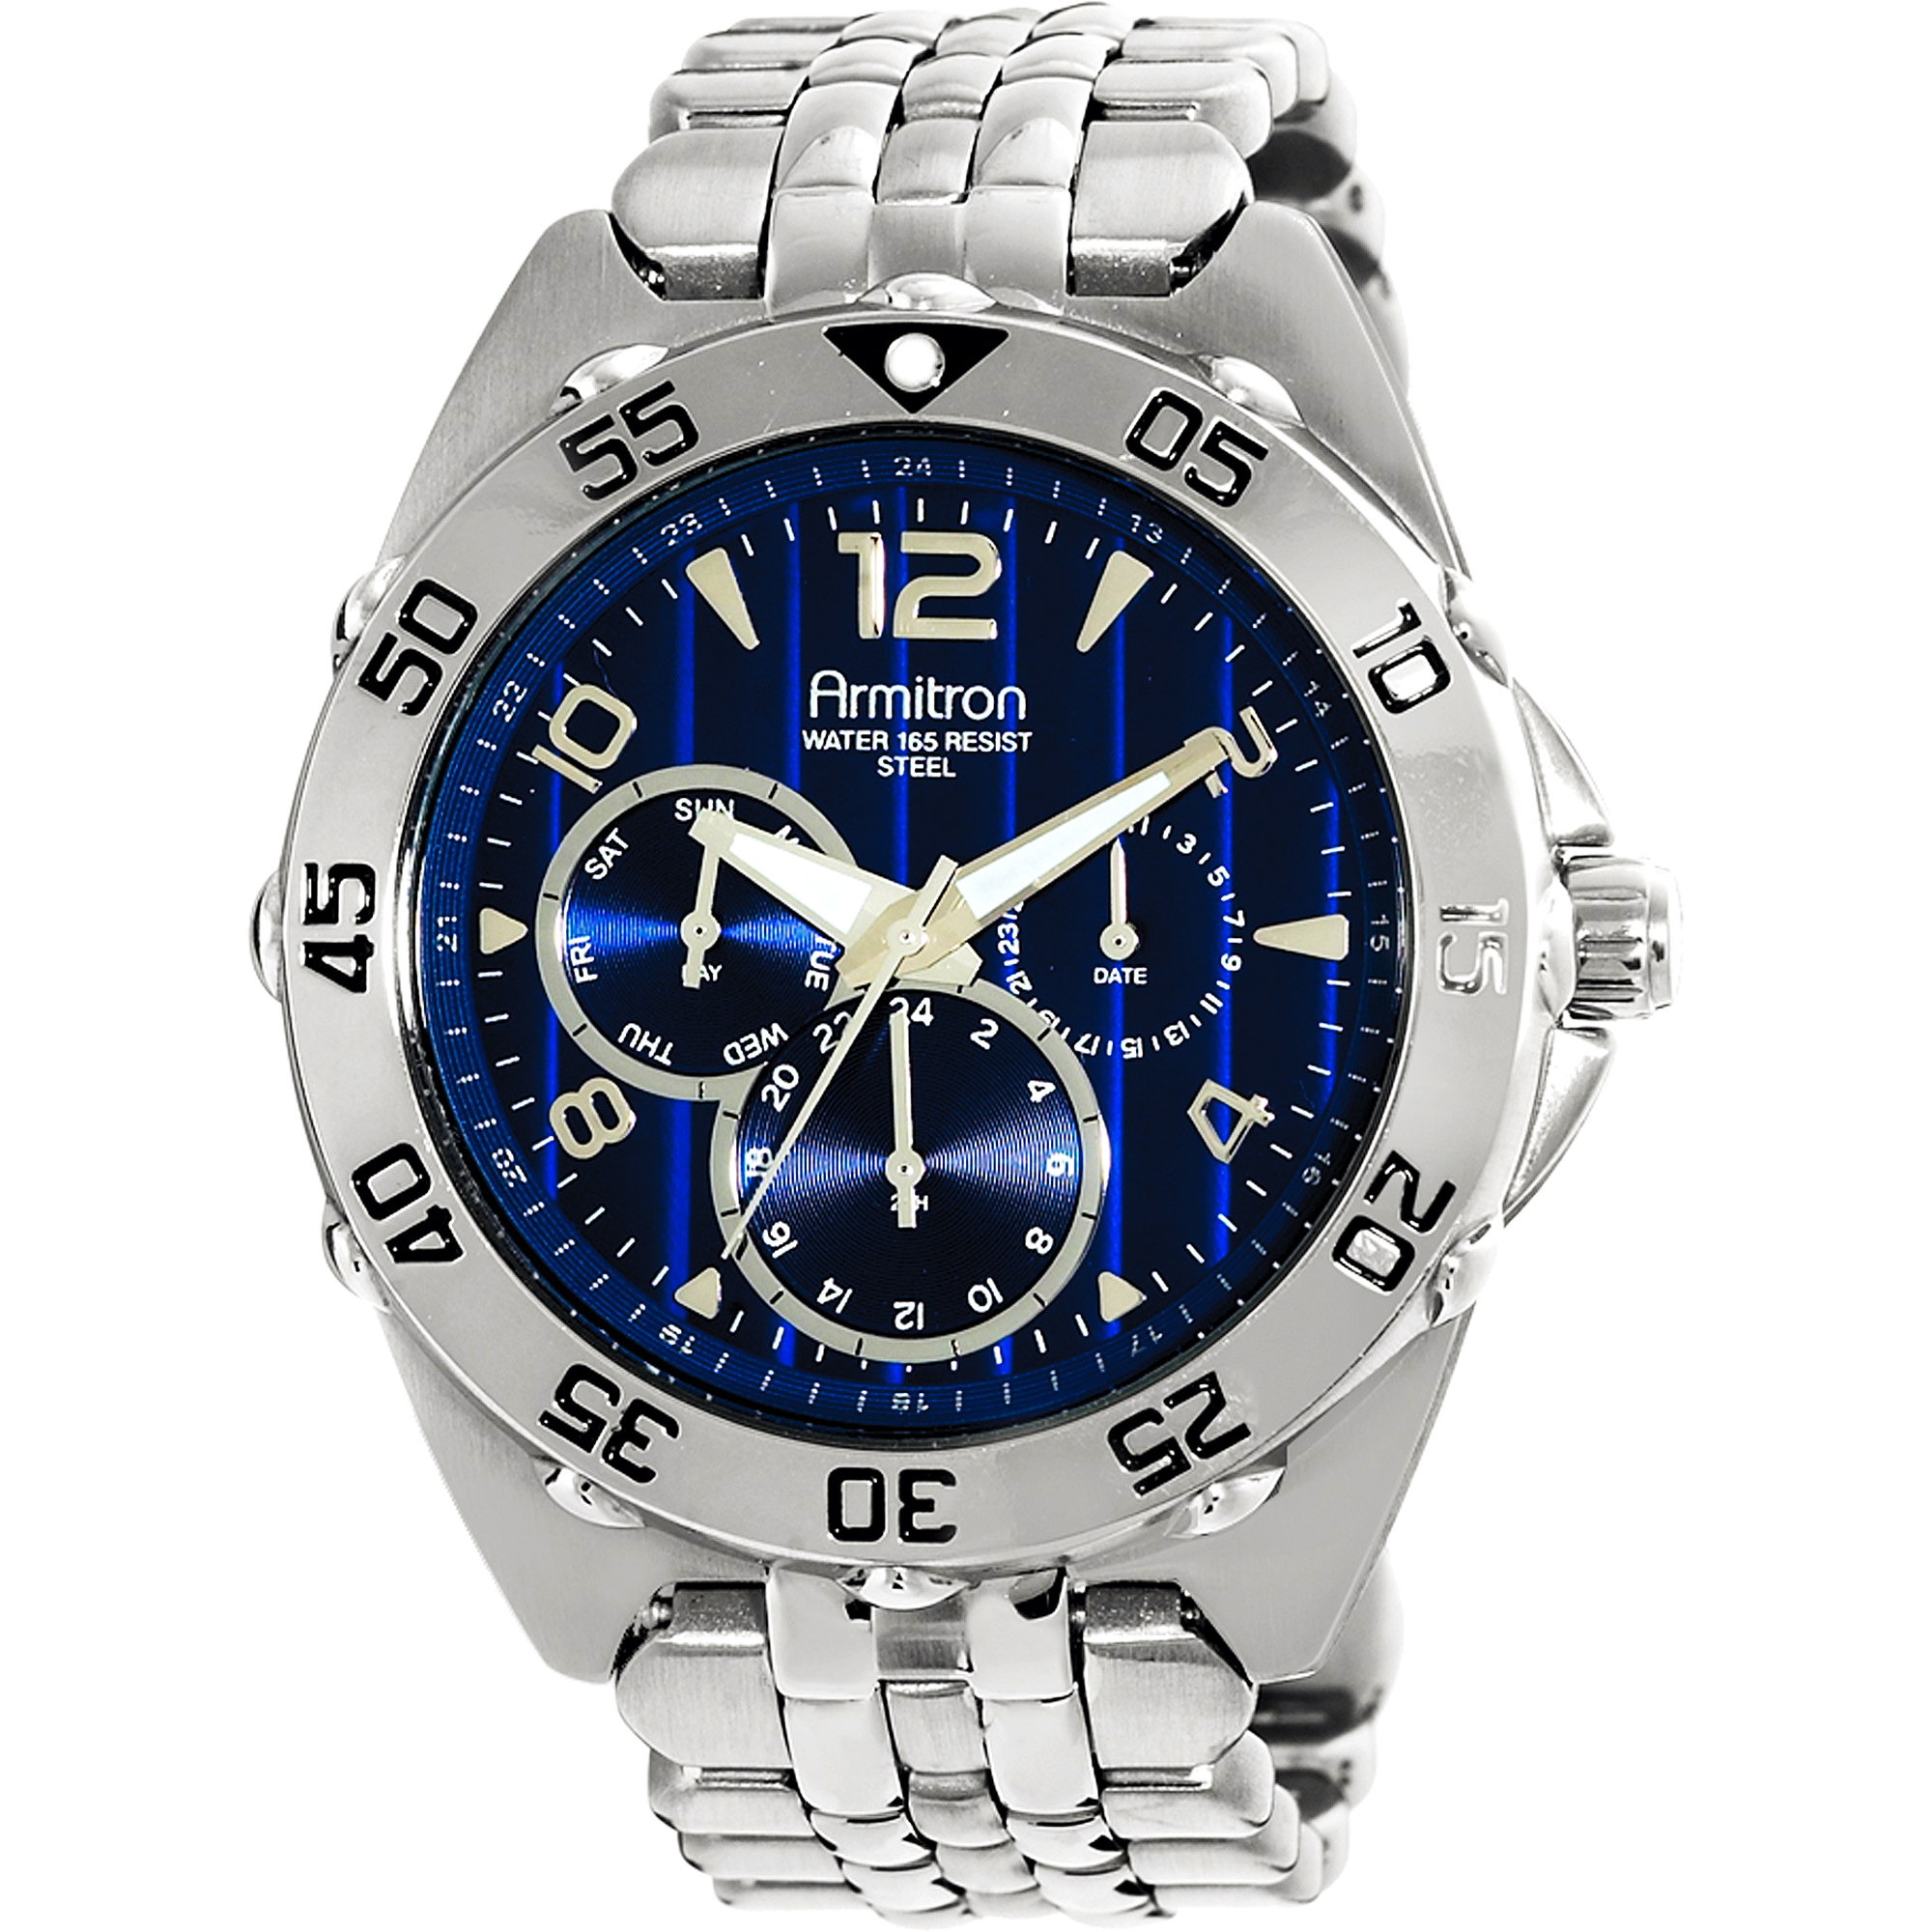 Armitron Men's Stainless Steel Sport Watch, Stainless Steel Bracelet